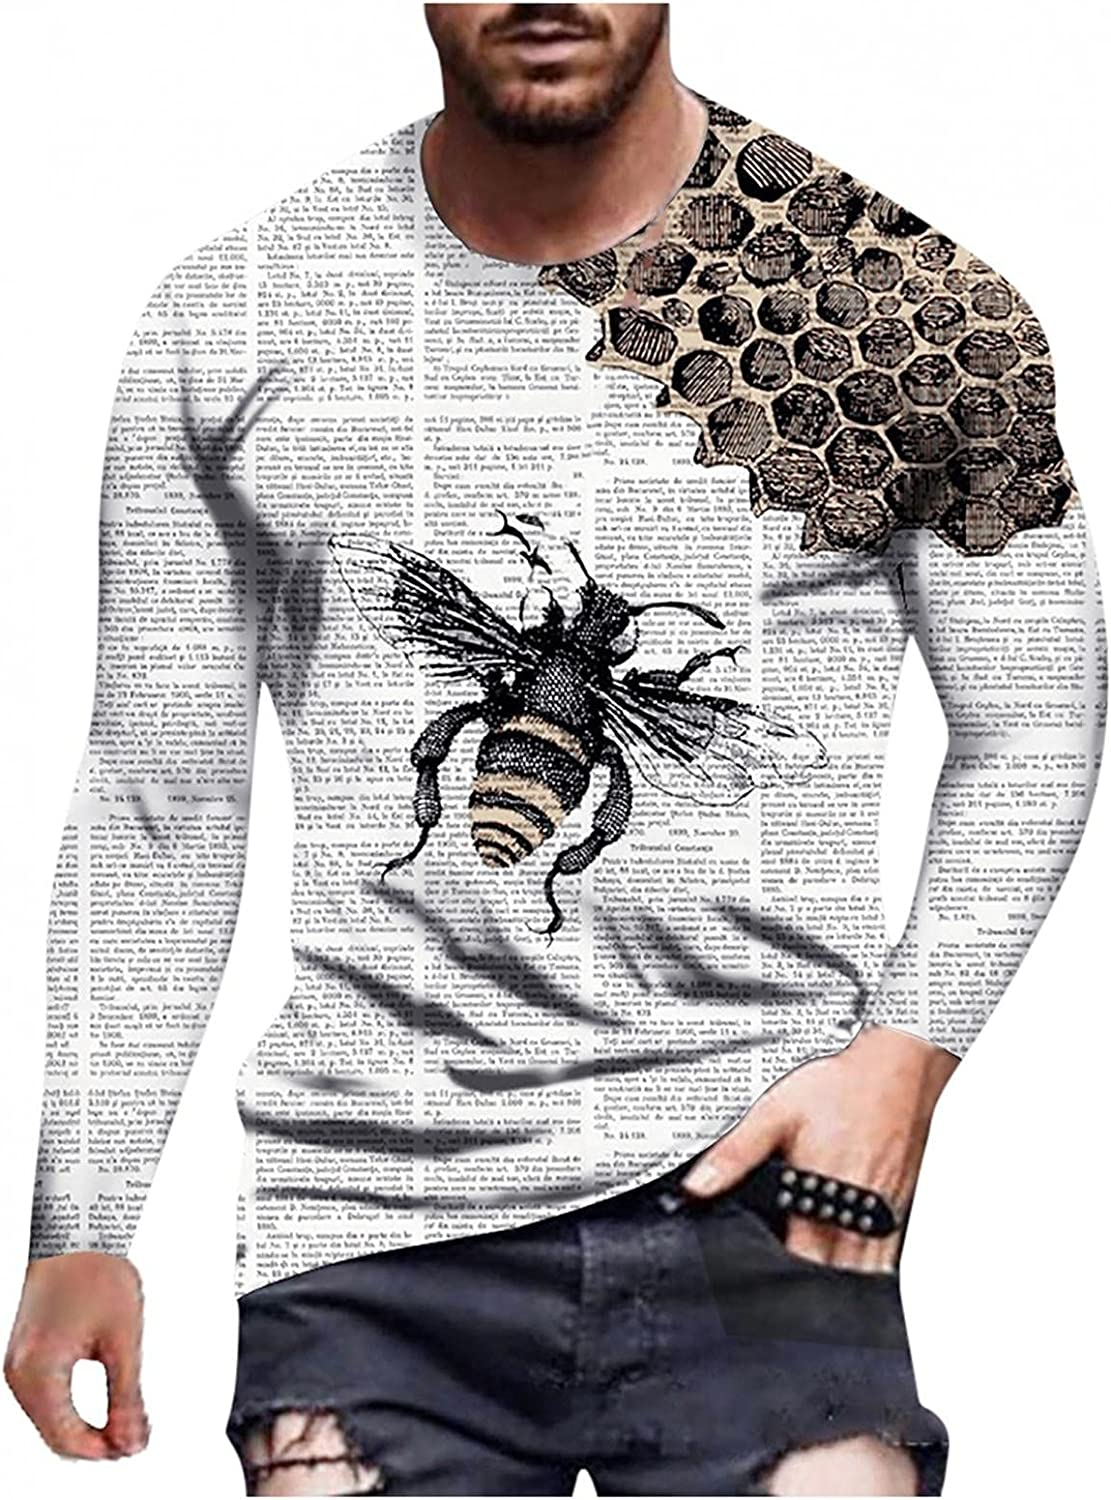 Aayomet Men's Tee Shirts Fashion Graphic Printed Tops Casual Athletic Long Sleeve Pullover T-Shirts Blouses for Men